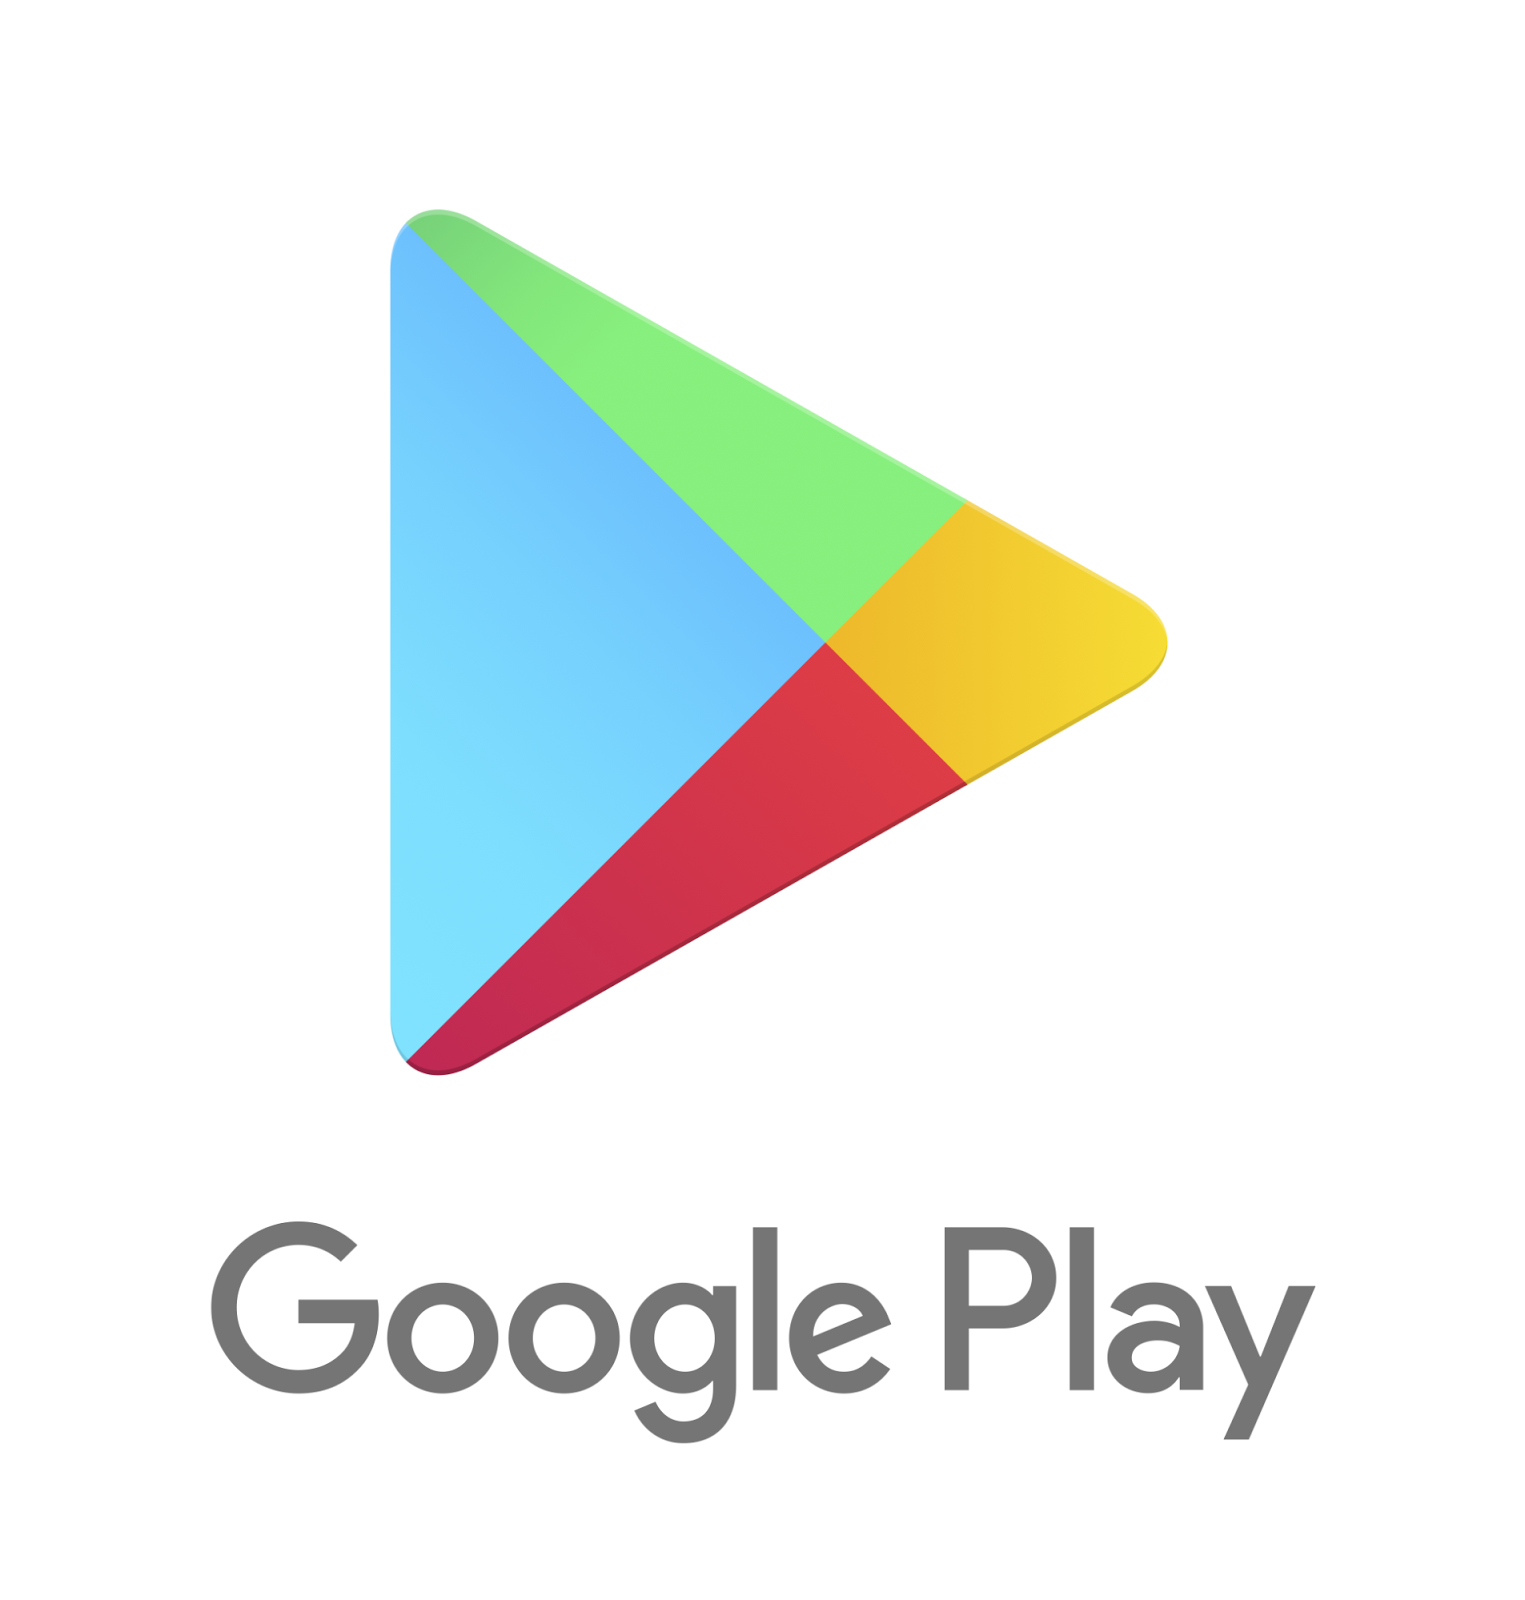 Subscribe on Google Play